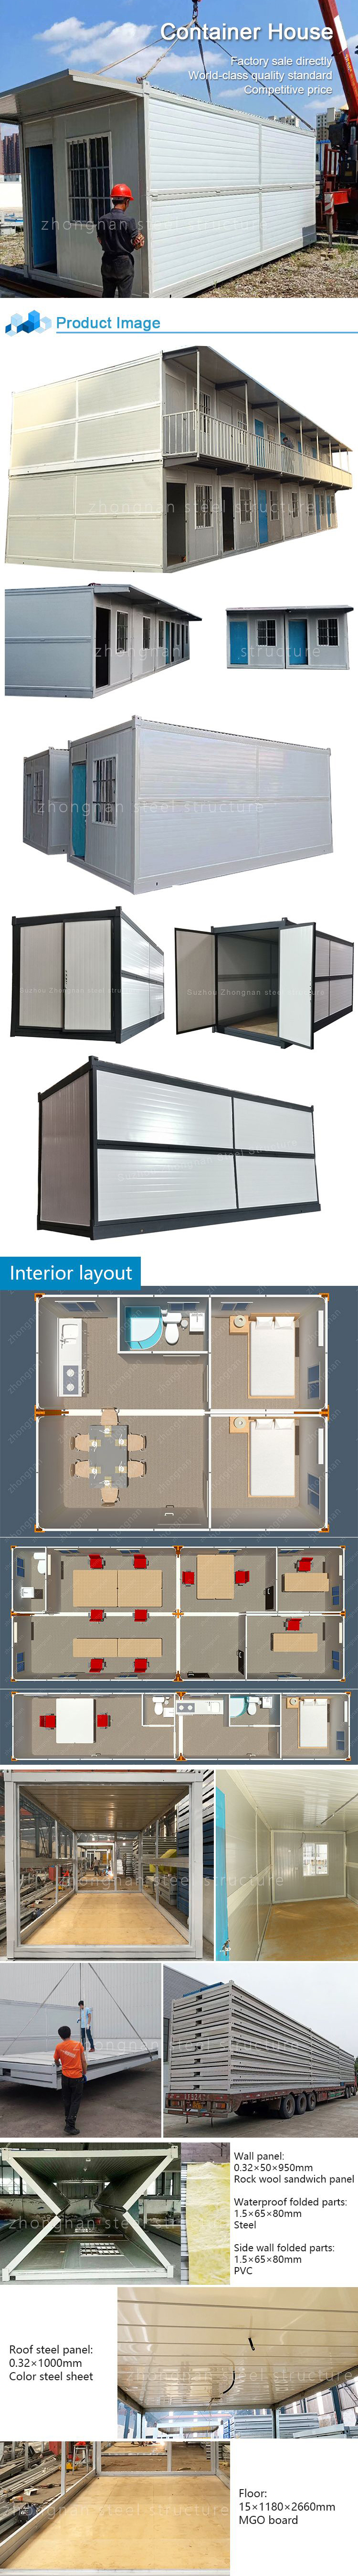 wholesale prefab luxury container cabin house for prefabricated resort hotel building rooms